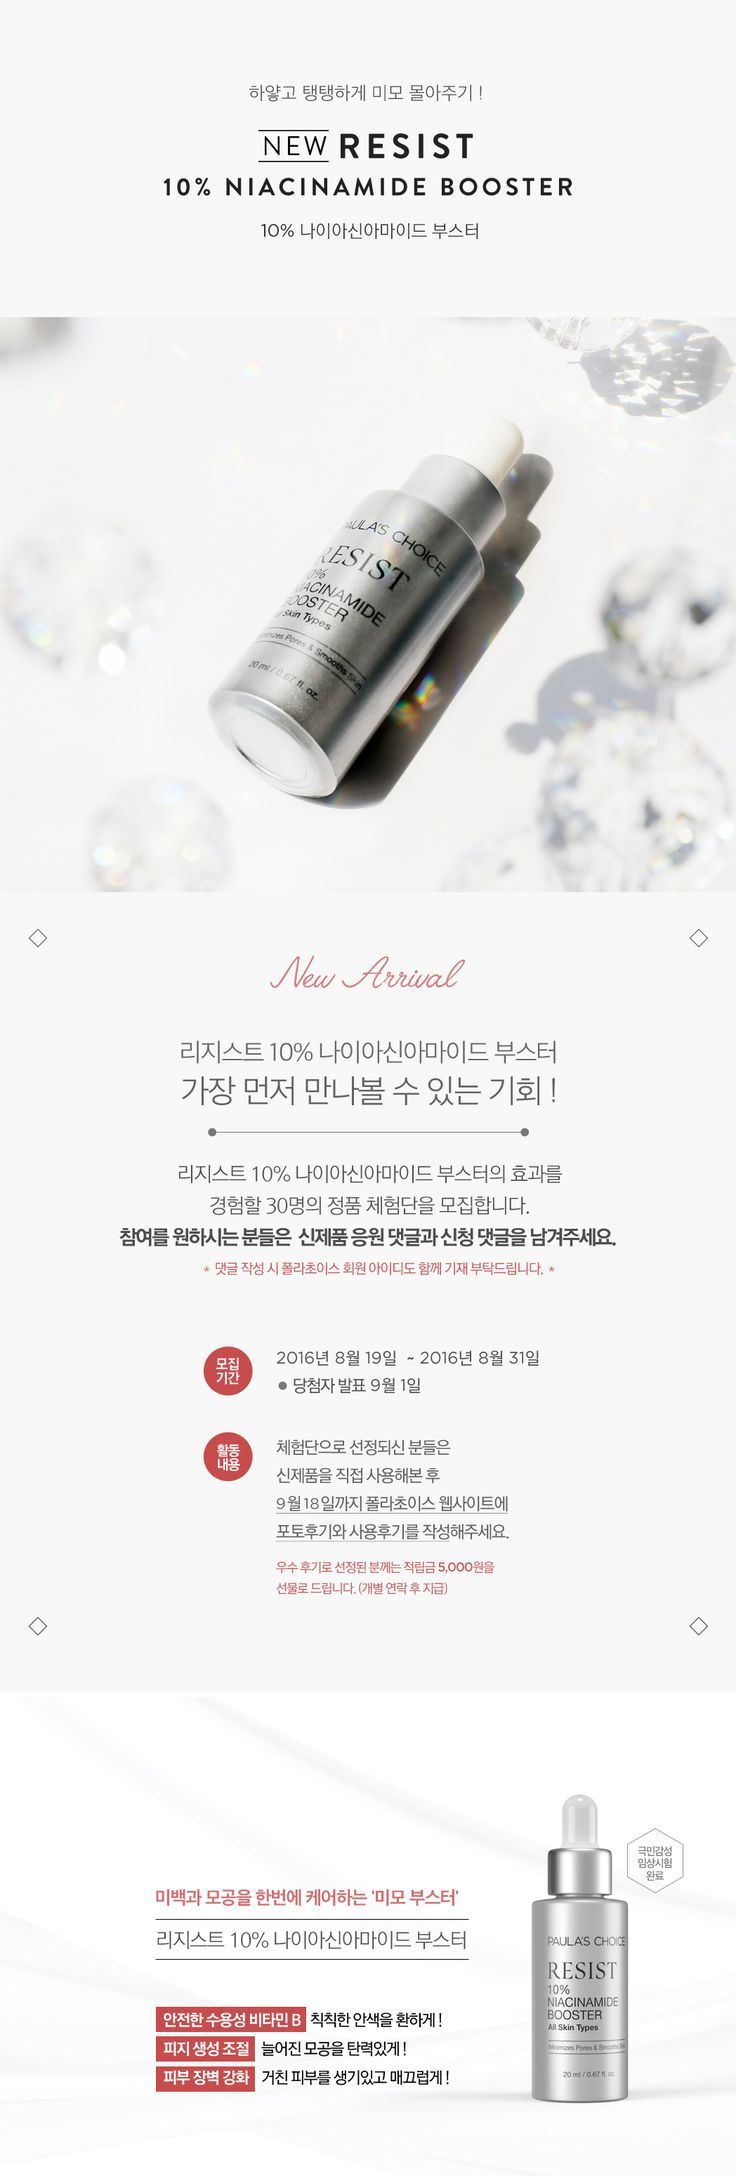 [PAULA'S CHOICE] 폴라초이스 NEWARRIVAL NIACINAMIDE COSMETICS EVENT DESIGN WEBDESIGN LAYOUT PINKDESIGN PINK GRAY 체험단 이벤트 페이지 웹디자인 화장품 상세페이지